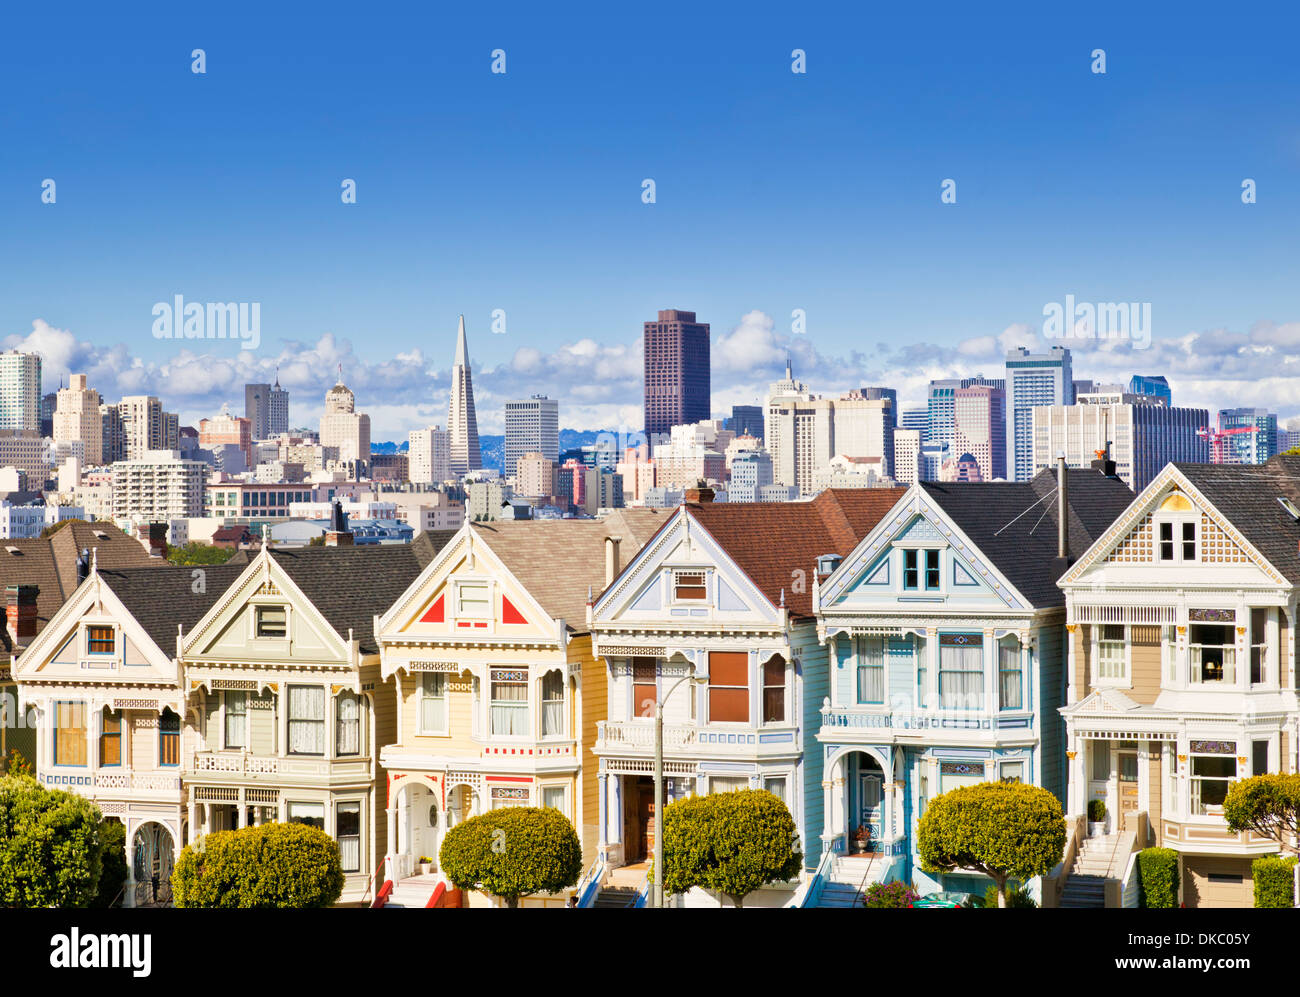 San Francisco Painted Ladies famous well maintained old Victorian houses on Alamo Square San Francisco California - Stock Image